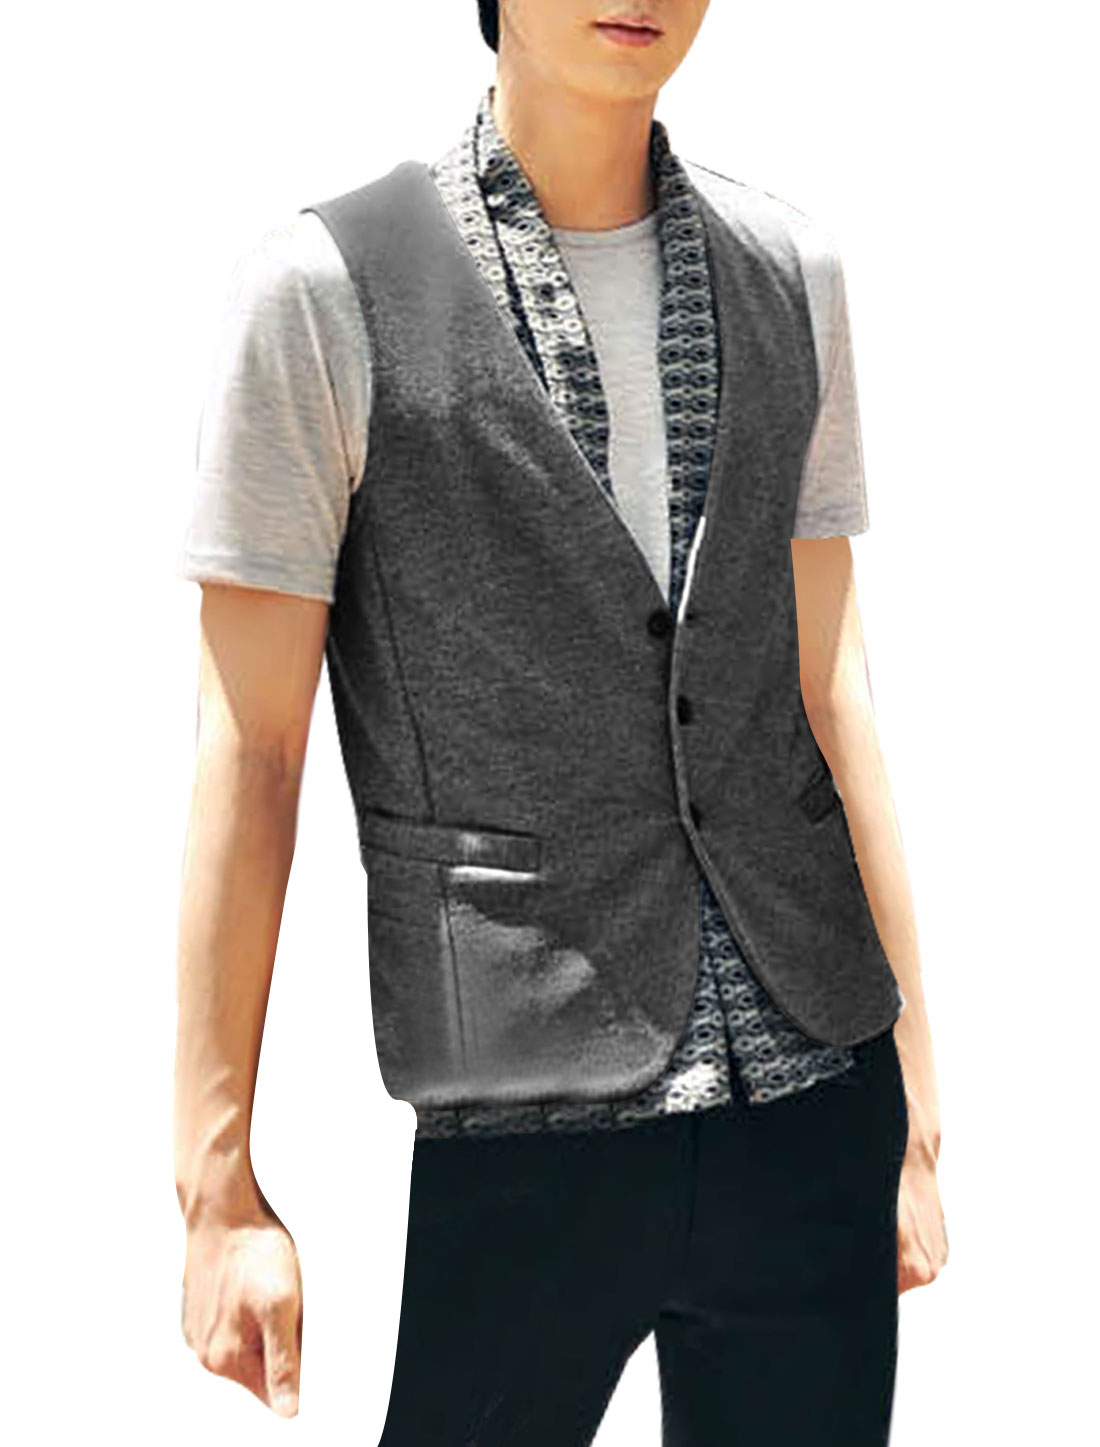 Mens Dark Gray Korean Sleeveless Button Closure Simple Style Slim Vest M